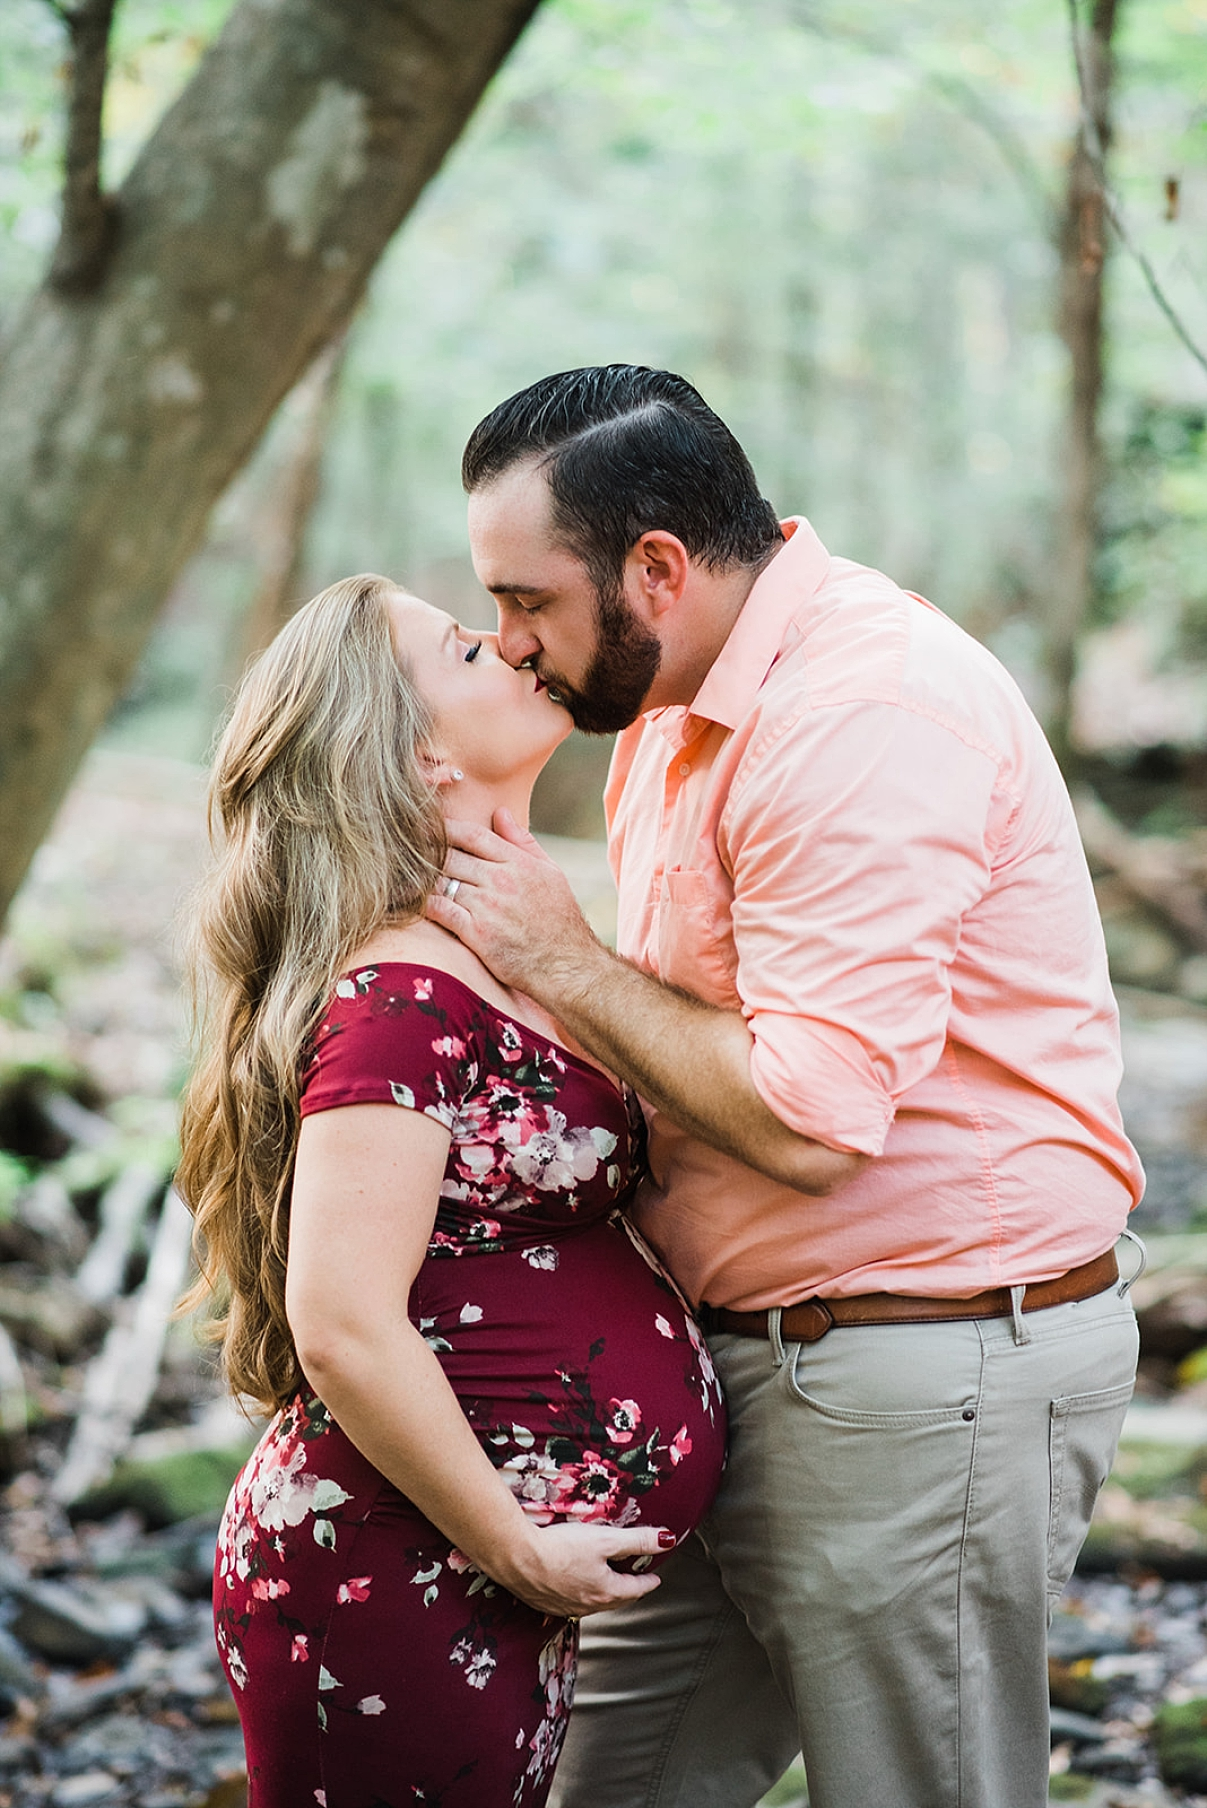 STEFANY & JACOB | KEISLER MATERNITY SESSION IN ALABAMA | MATERNITY SESSION IN CREEK